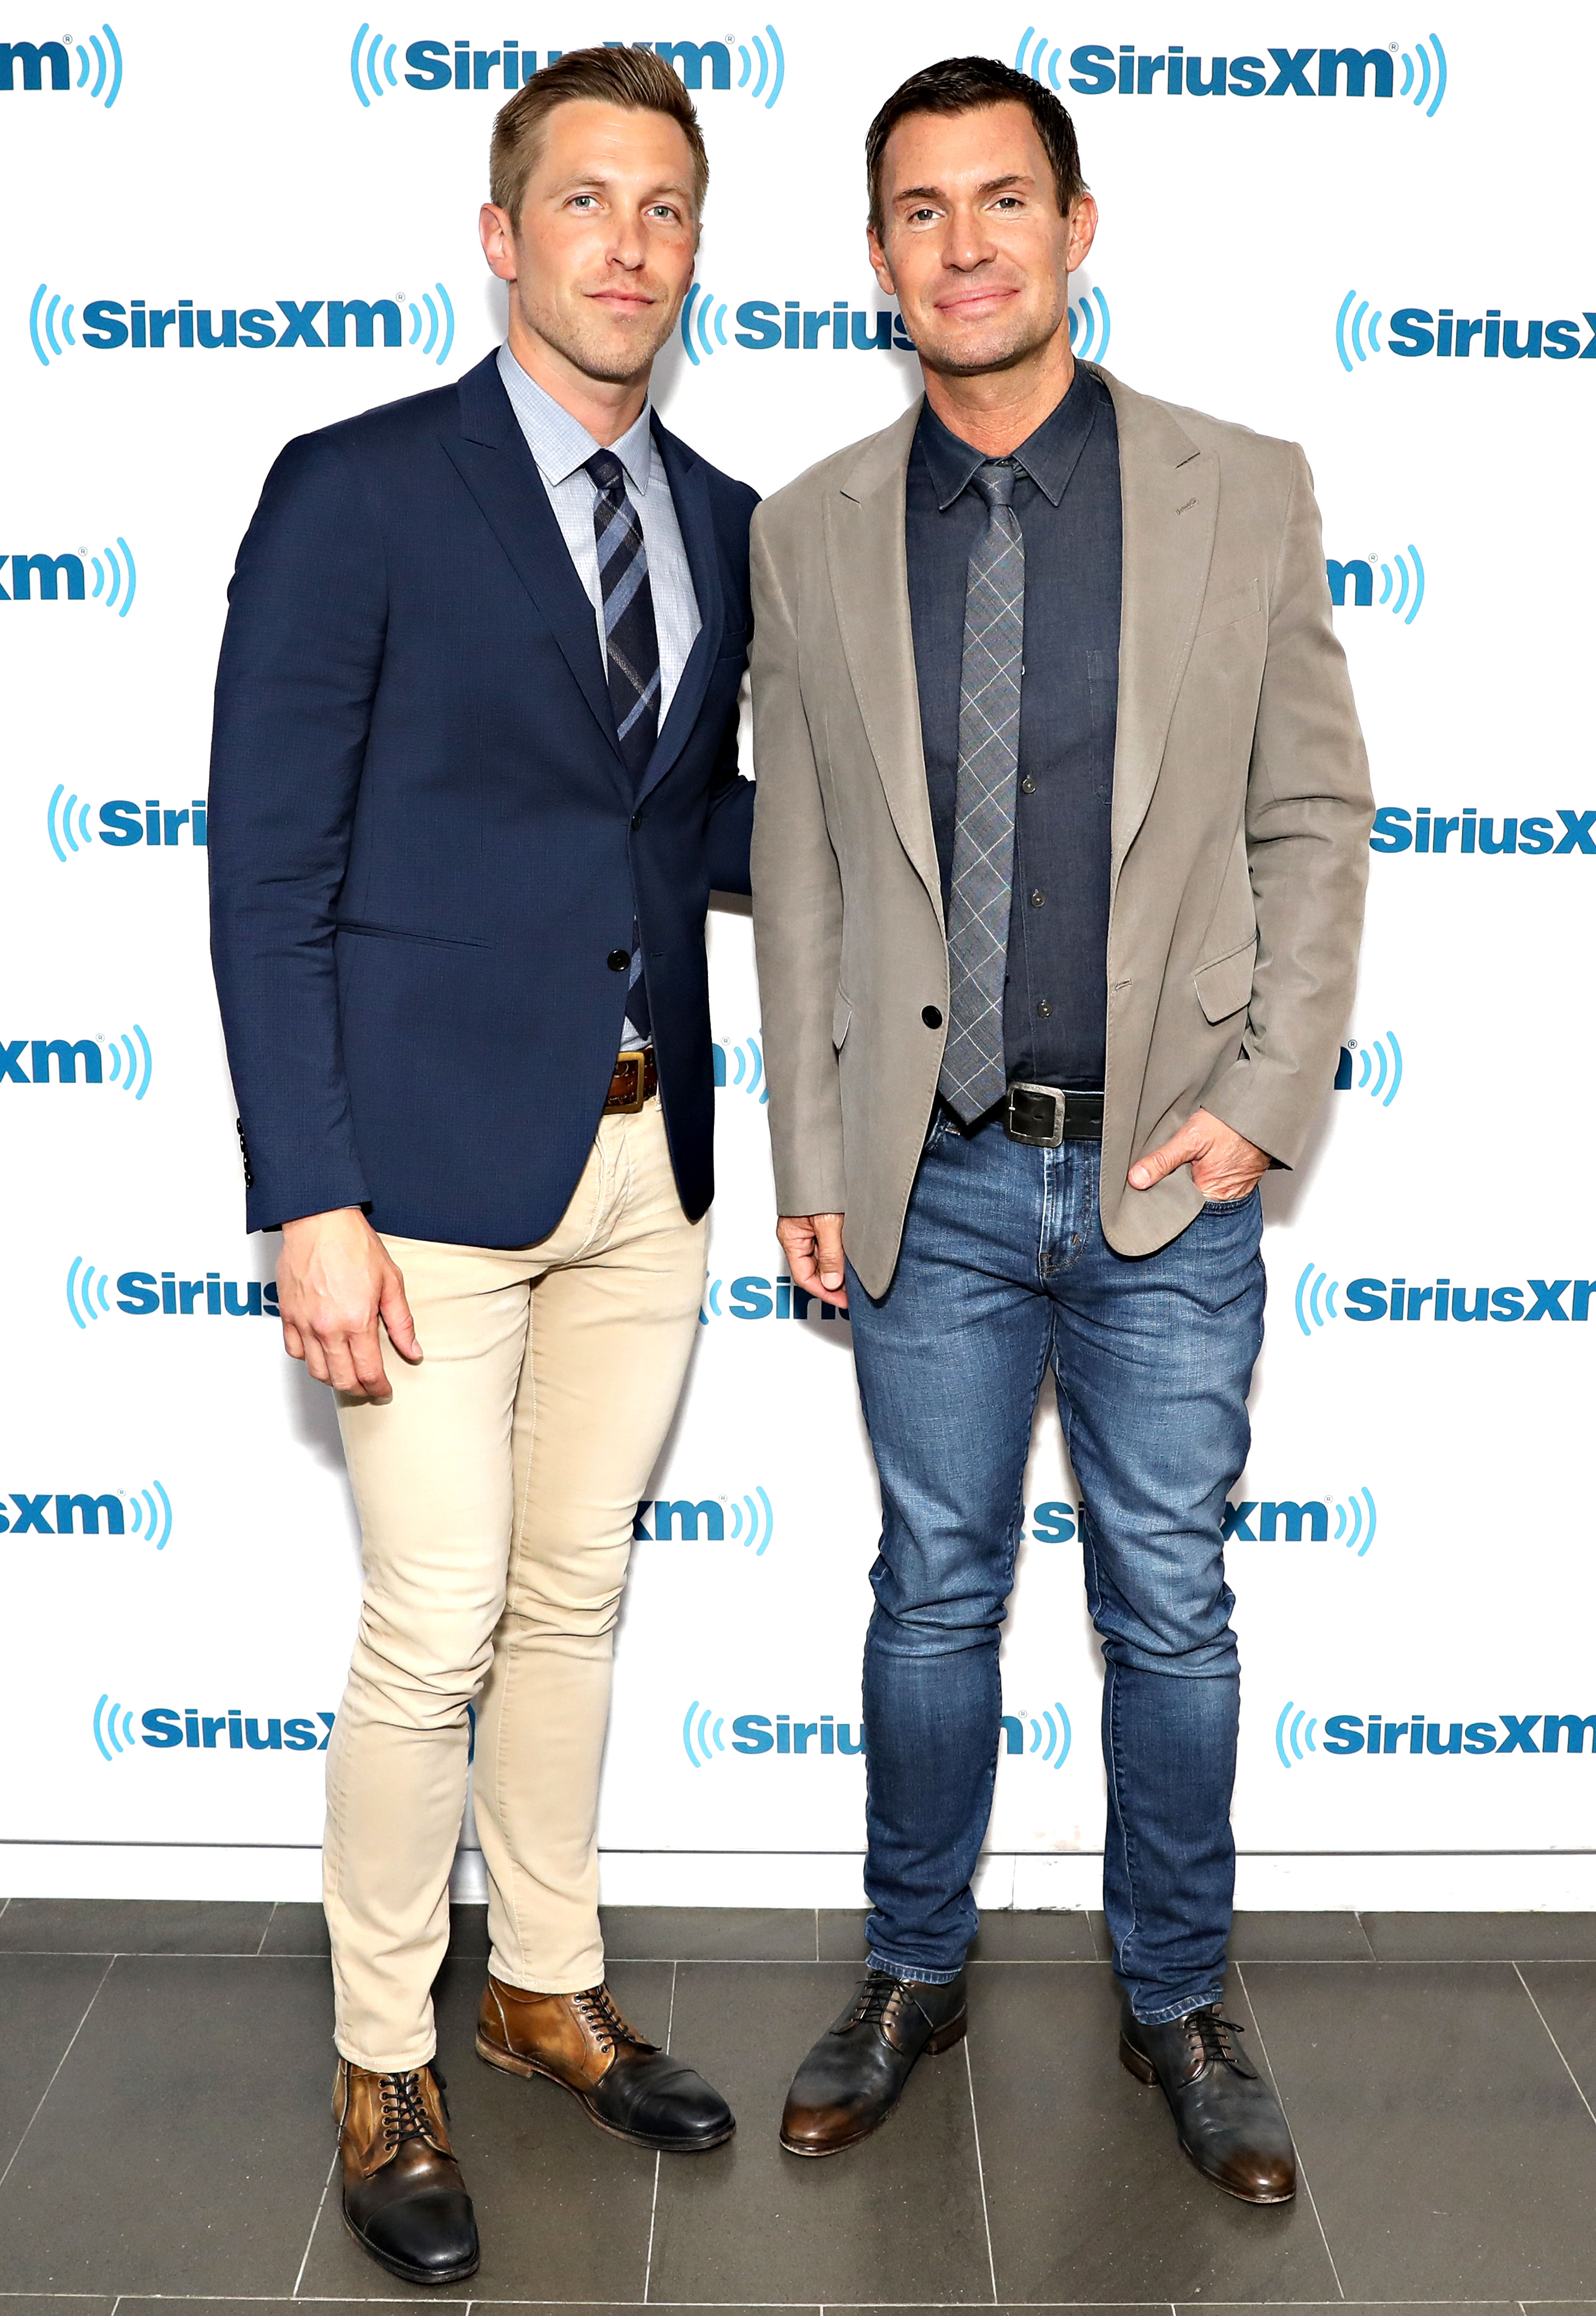 Jeff Lewis Discusses Visitation Schedule With Ex Gage Edwards - Gage Edward and Jeff Lewis visit the SiriusXM Studios on June 8, 2018 in New York City.